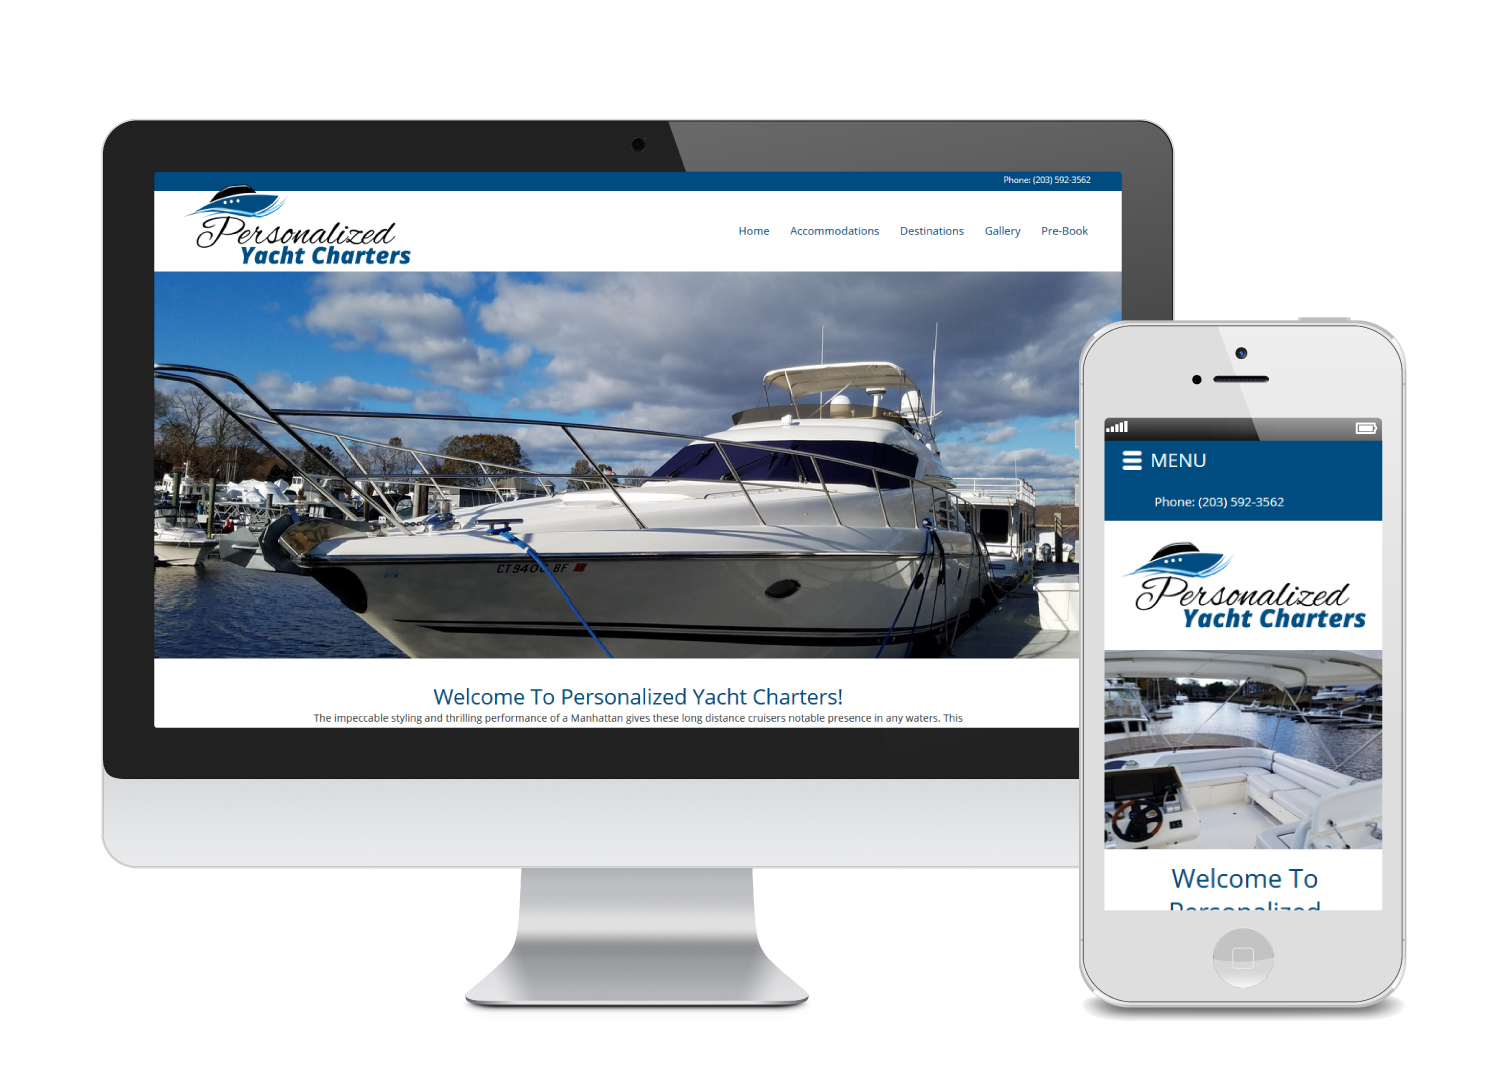 Personalized Yacht Charters